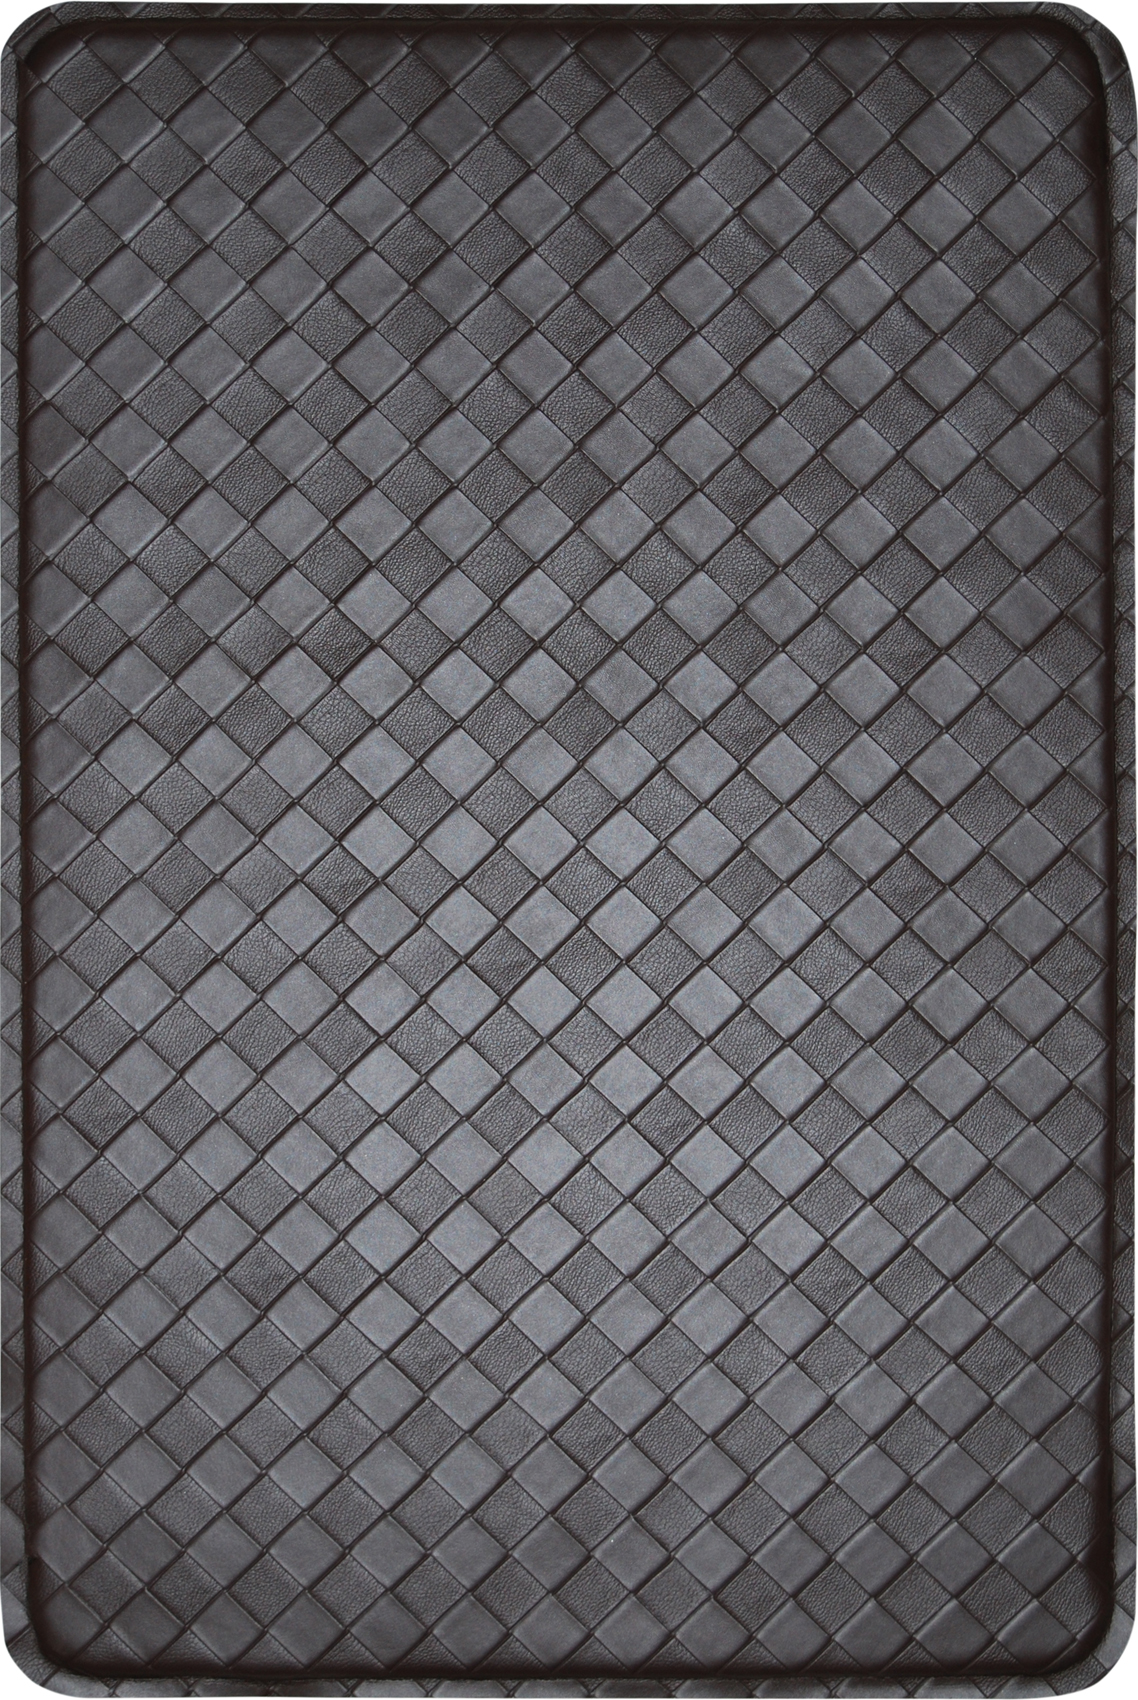 Cushioned Floor Mats For Kitchen Modern Indoor Cushion Kitchen Rug Anti Fatigue Floor Mat Actual